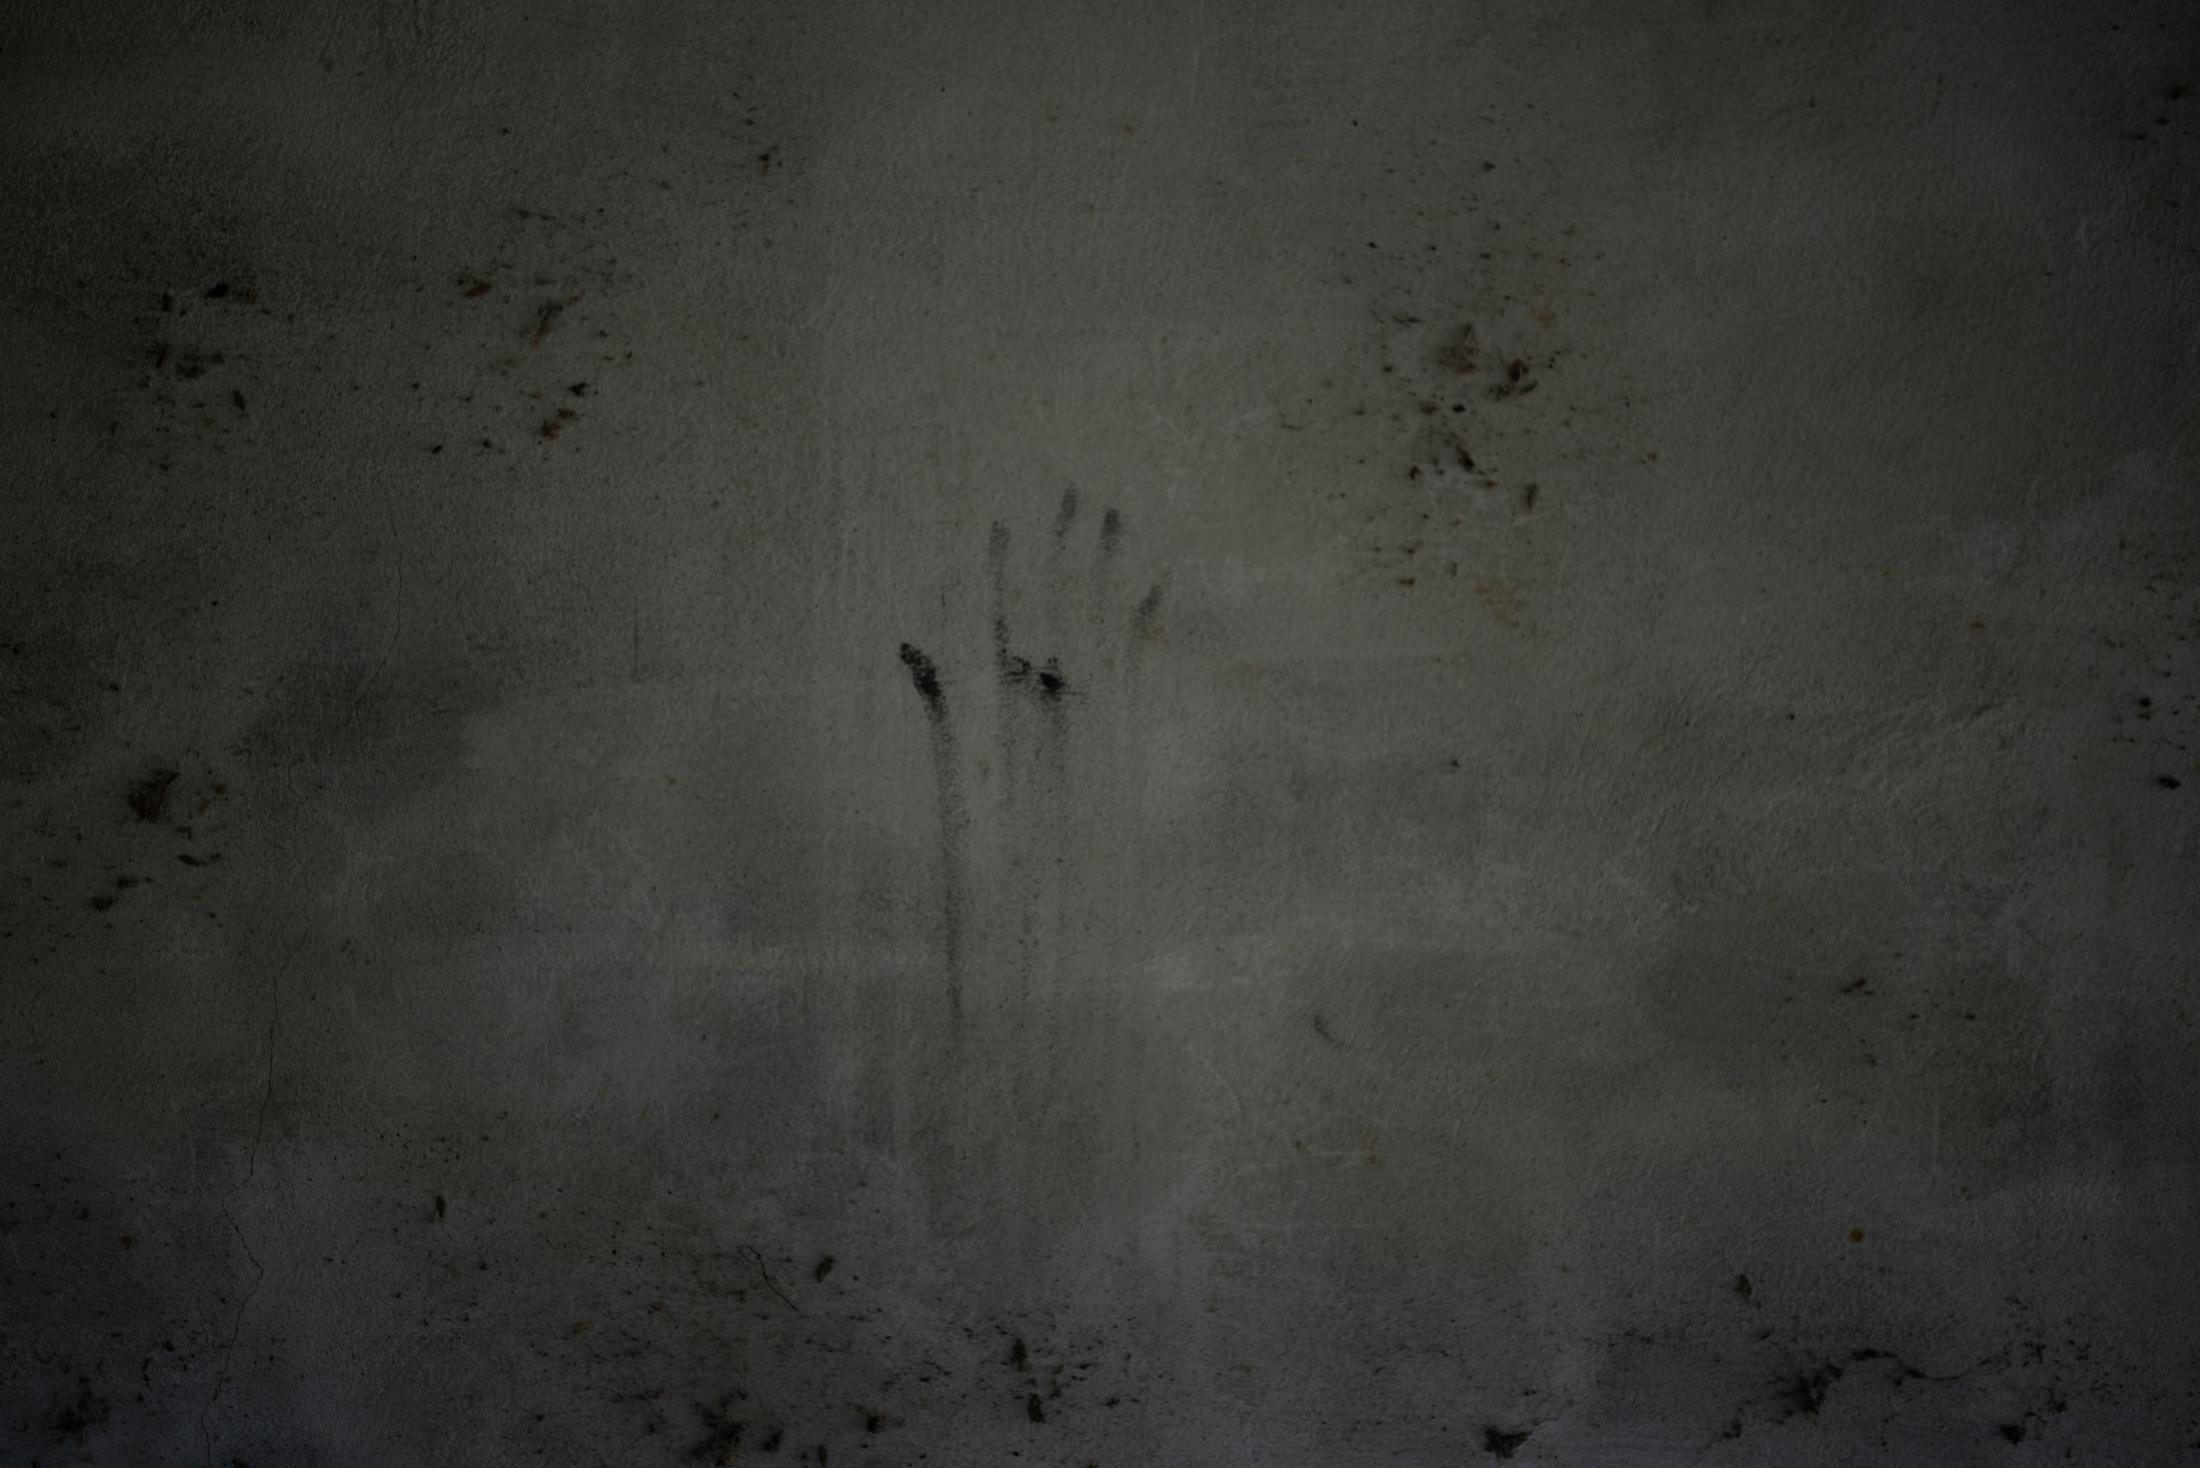 """The handprint made of ashes inside the house located in the ranch """"La Gallera"""" where human remains have been located during the fifth National Missing Persons Search Brigade in Tihuatlán, Veracruz, Mexico, on February 20, 2020. Victoria Razo for NPR"""